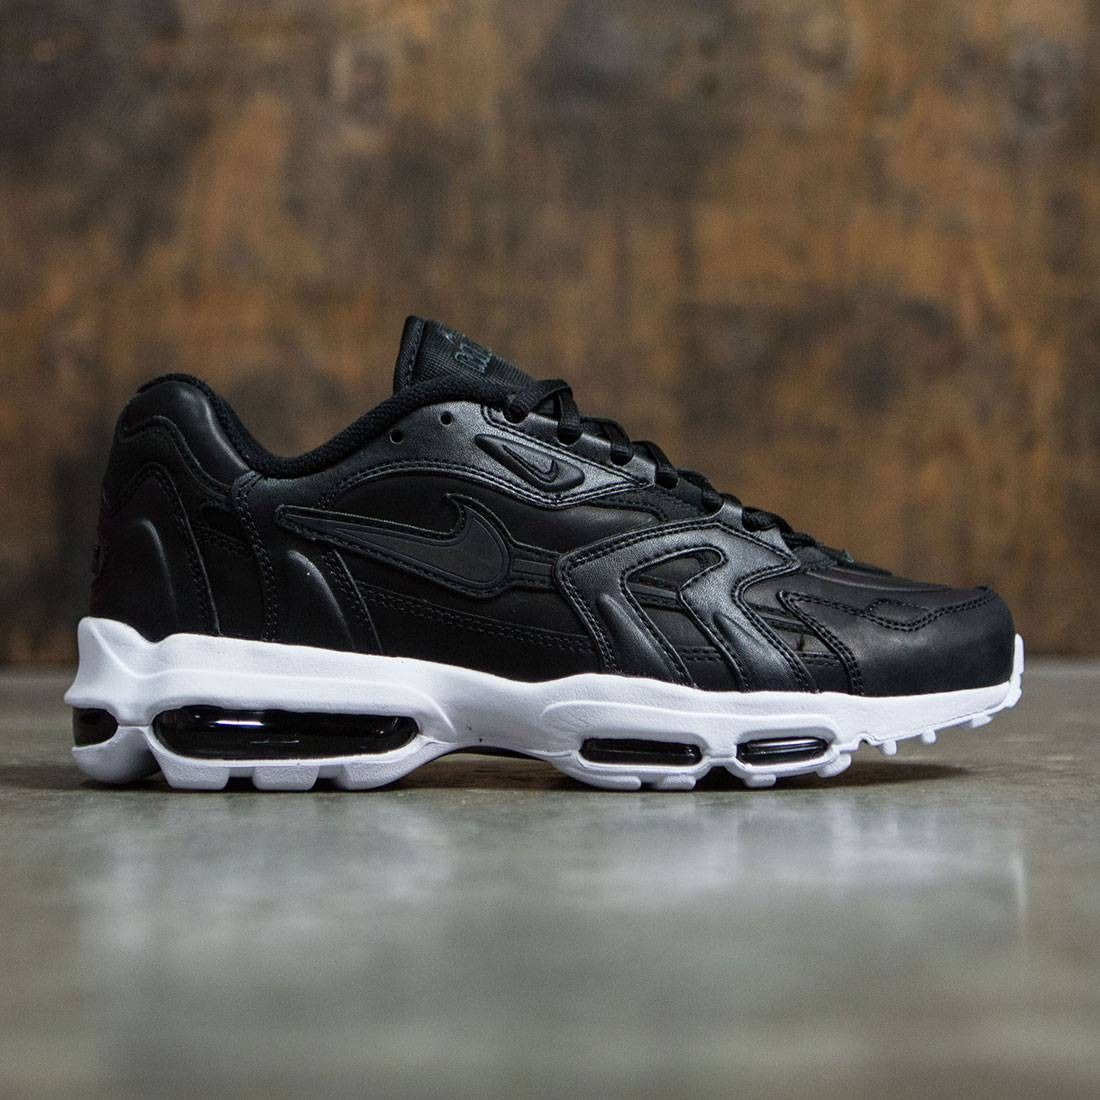 08cbfb5fc9b8 Nike Men Air Max 96 Ii Xx Qs (black   black) in 2018